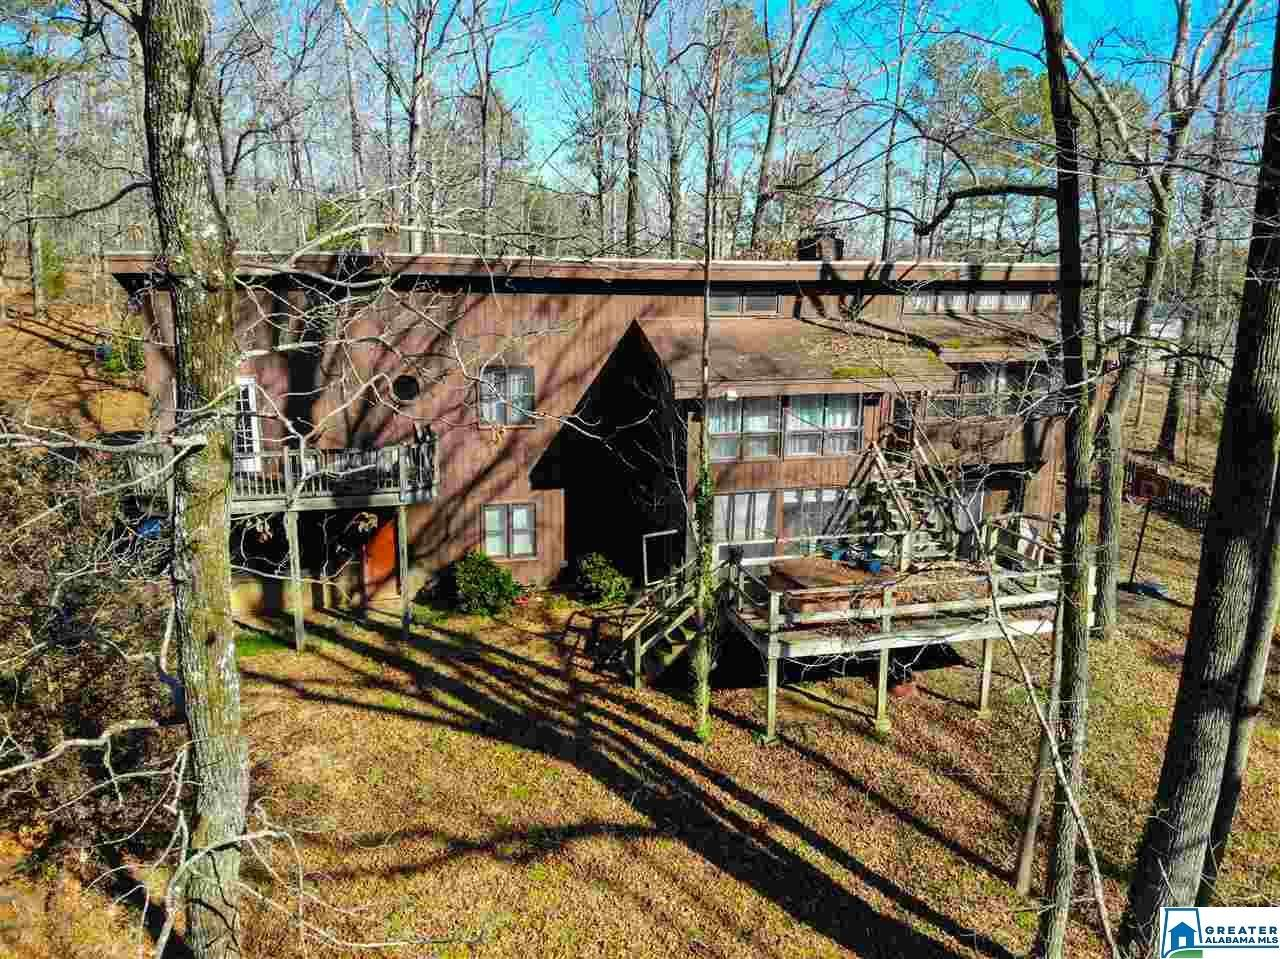 261 BENT TREE DR, Hayden, AL 35079 - MLS#: 870102